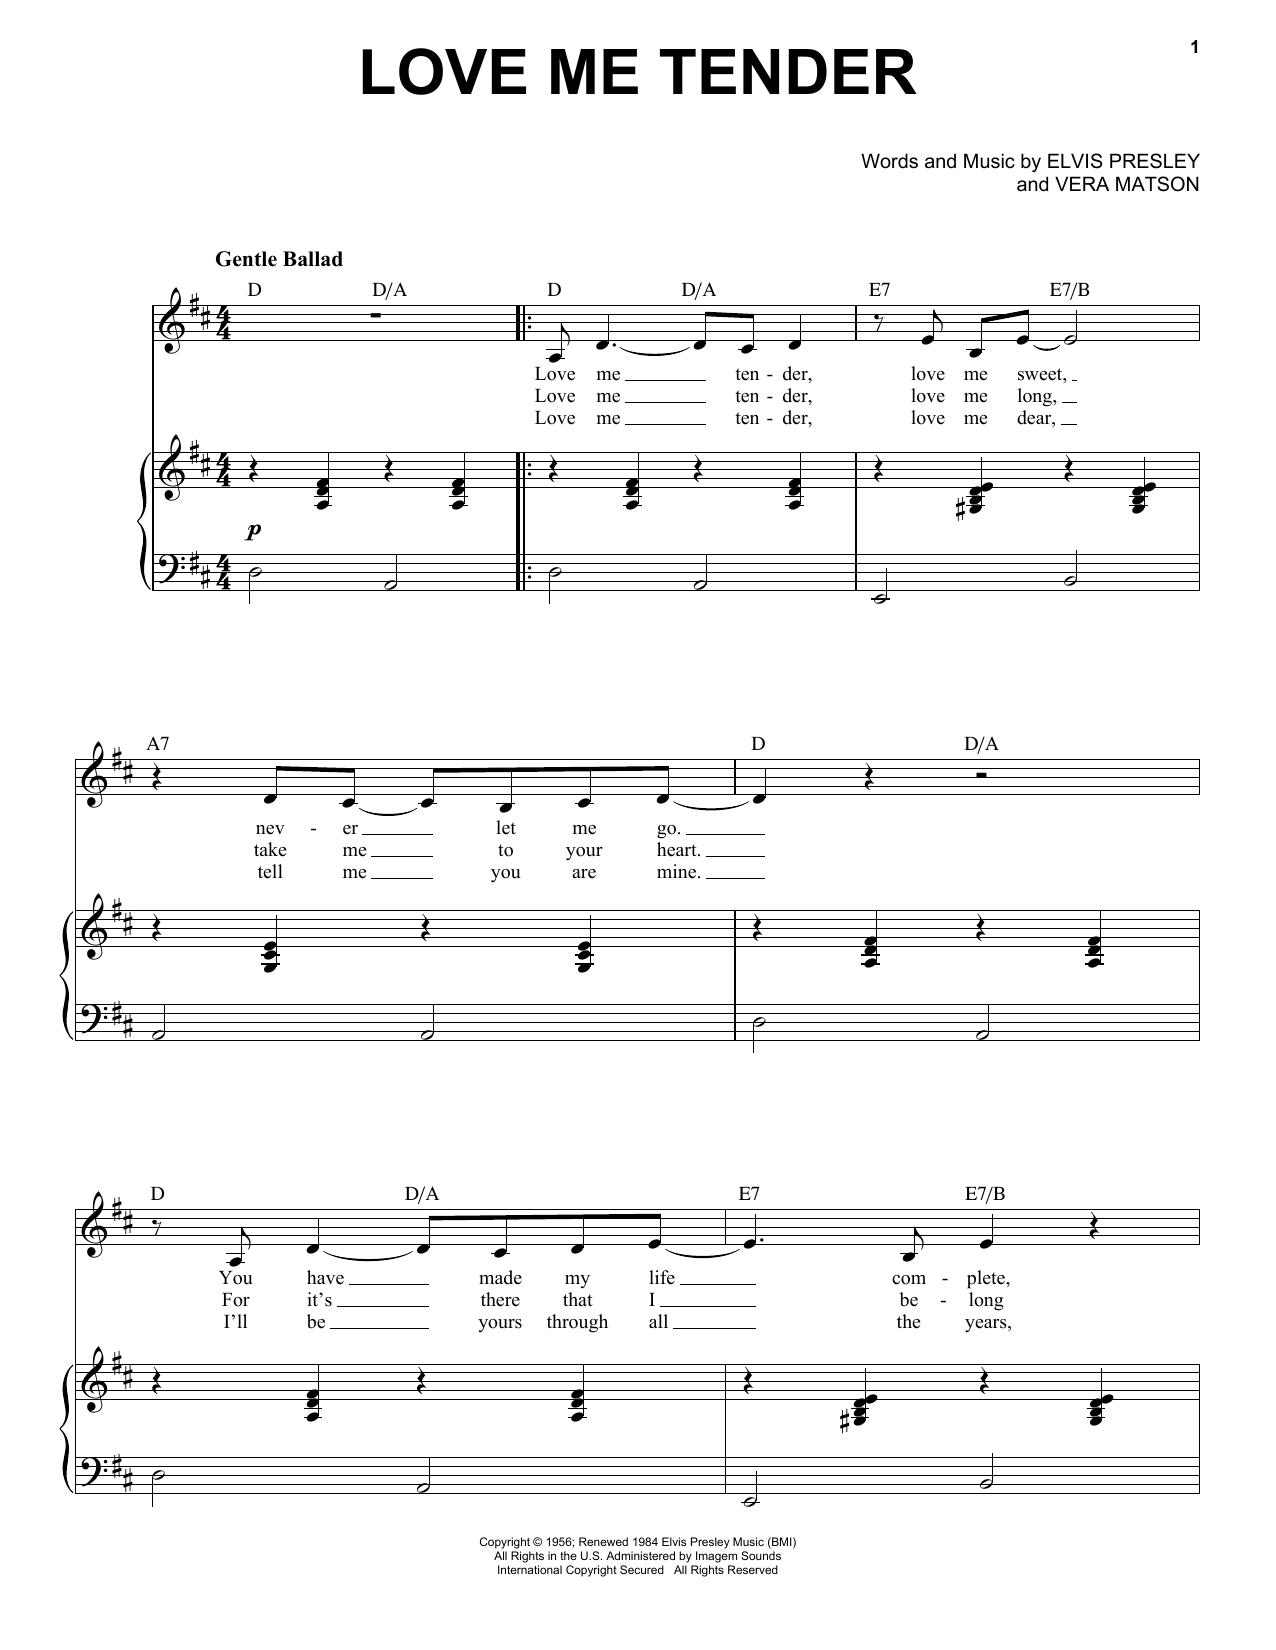 Sheet music digital files to print licensed vera matson digital sheet music digital files to print licensed vera matson digital sheet music hexwebz Images